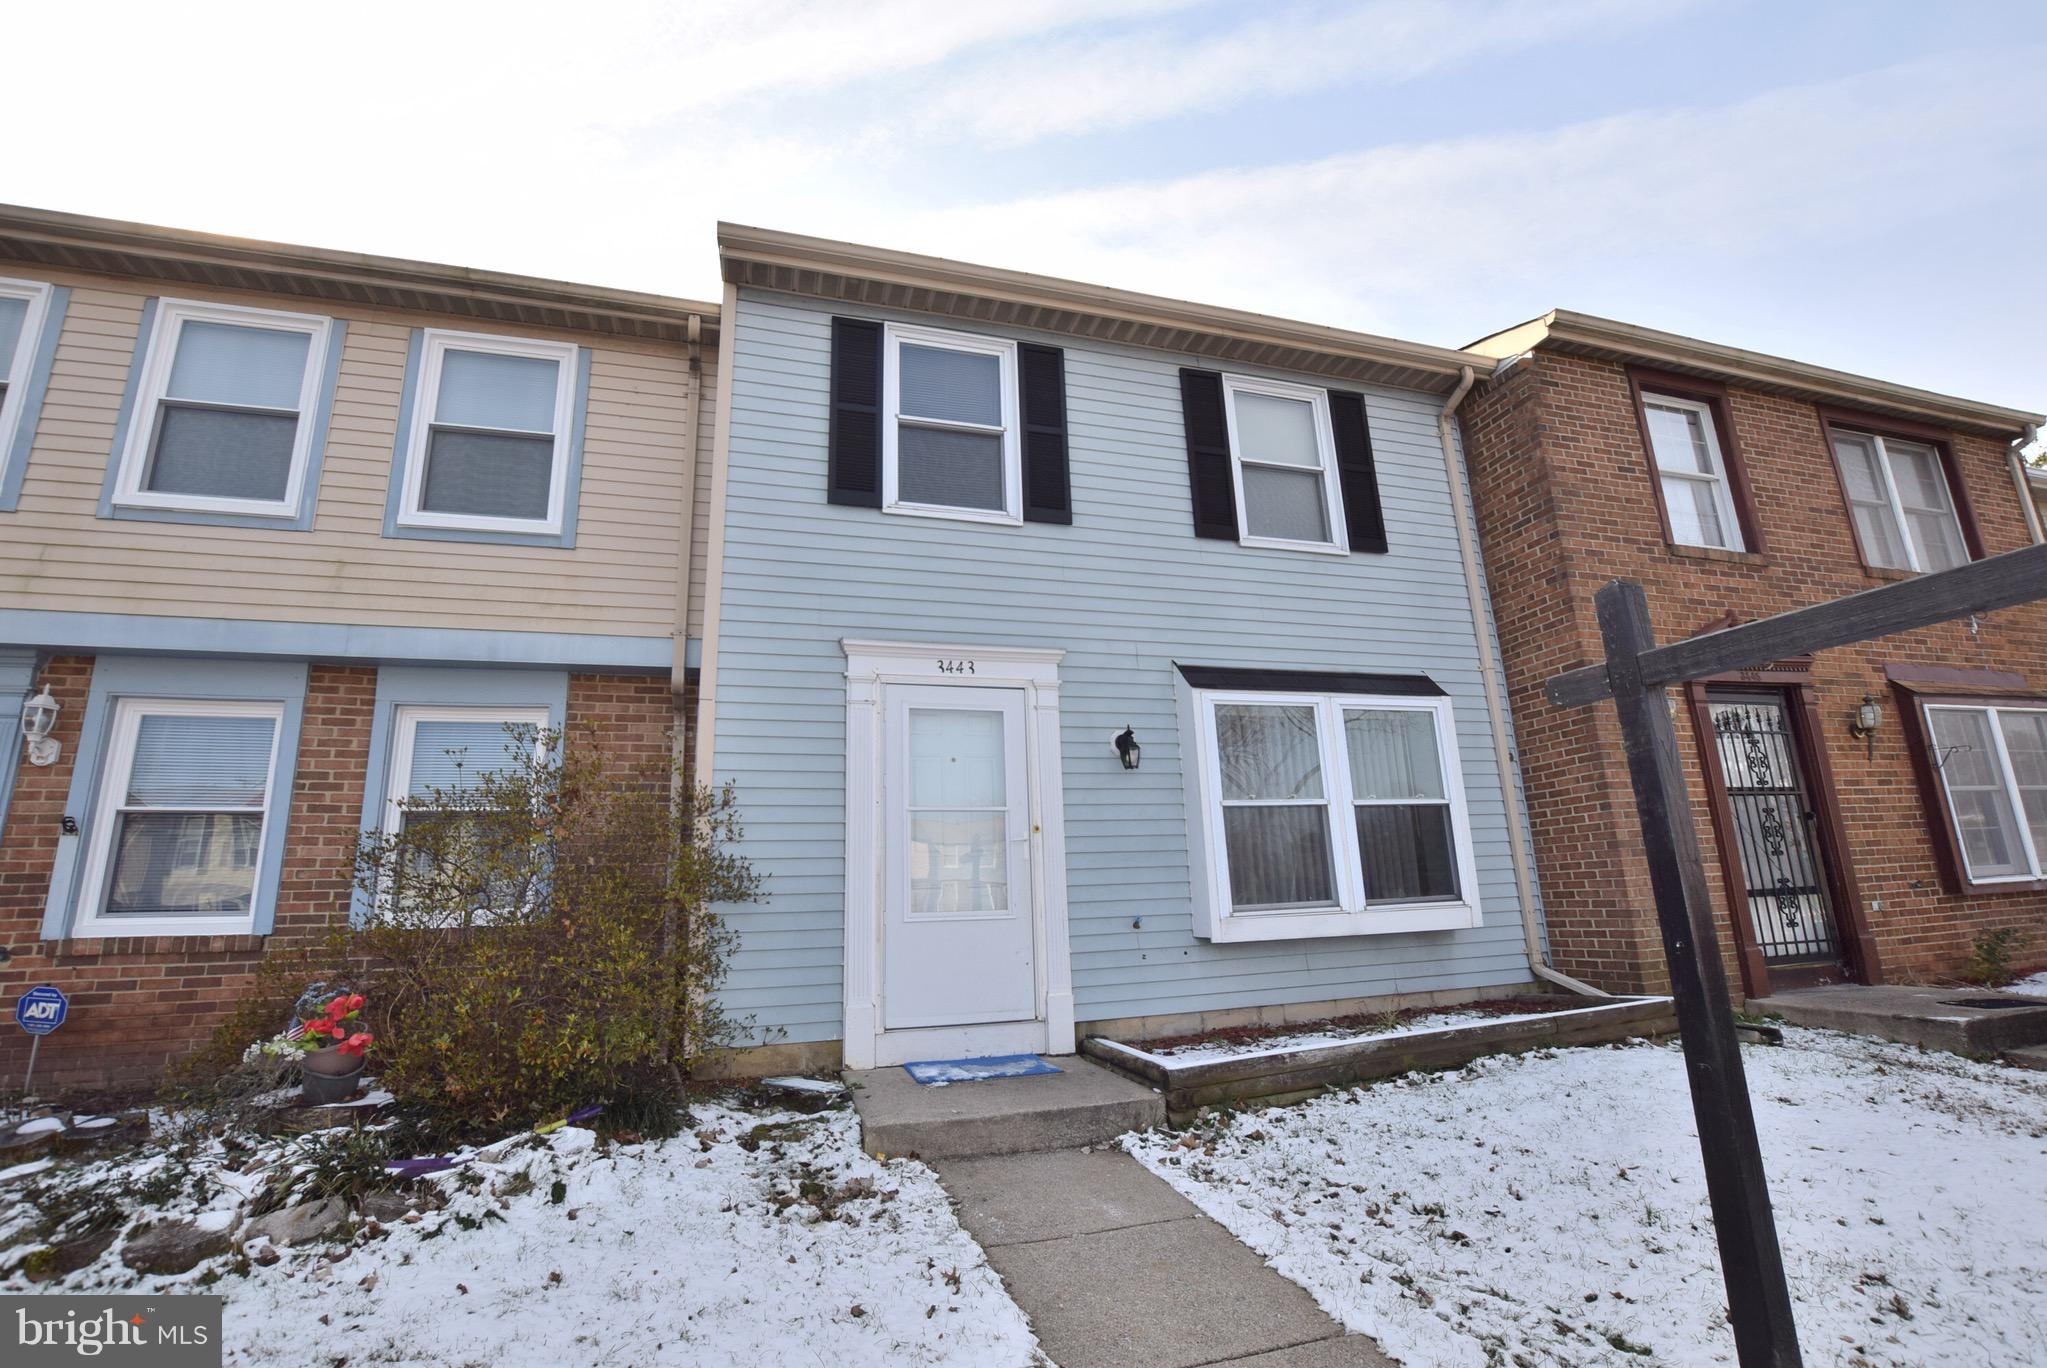 Beautifully updated, four bedroom townhome!  Kitchen w/ stainless steel appliances & new granite counters - Remodeled bathroom w/ stylish tile & sliding doors - Modern lighting & fixtures - Fenced backyard, large shed & ground level deck - Master bedroom w/ walk-in closet & second closet - Main level bedroom - Ideal location!